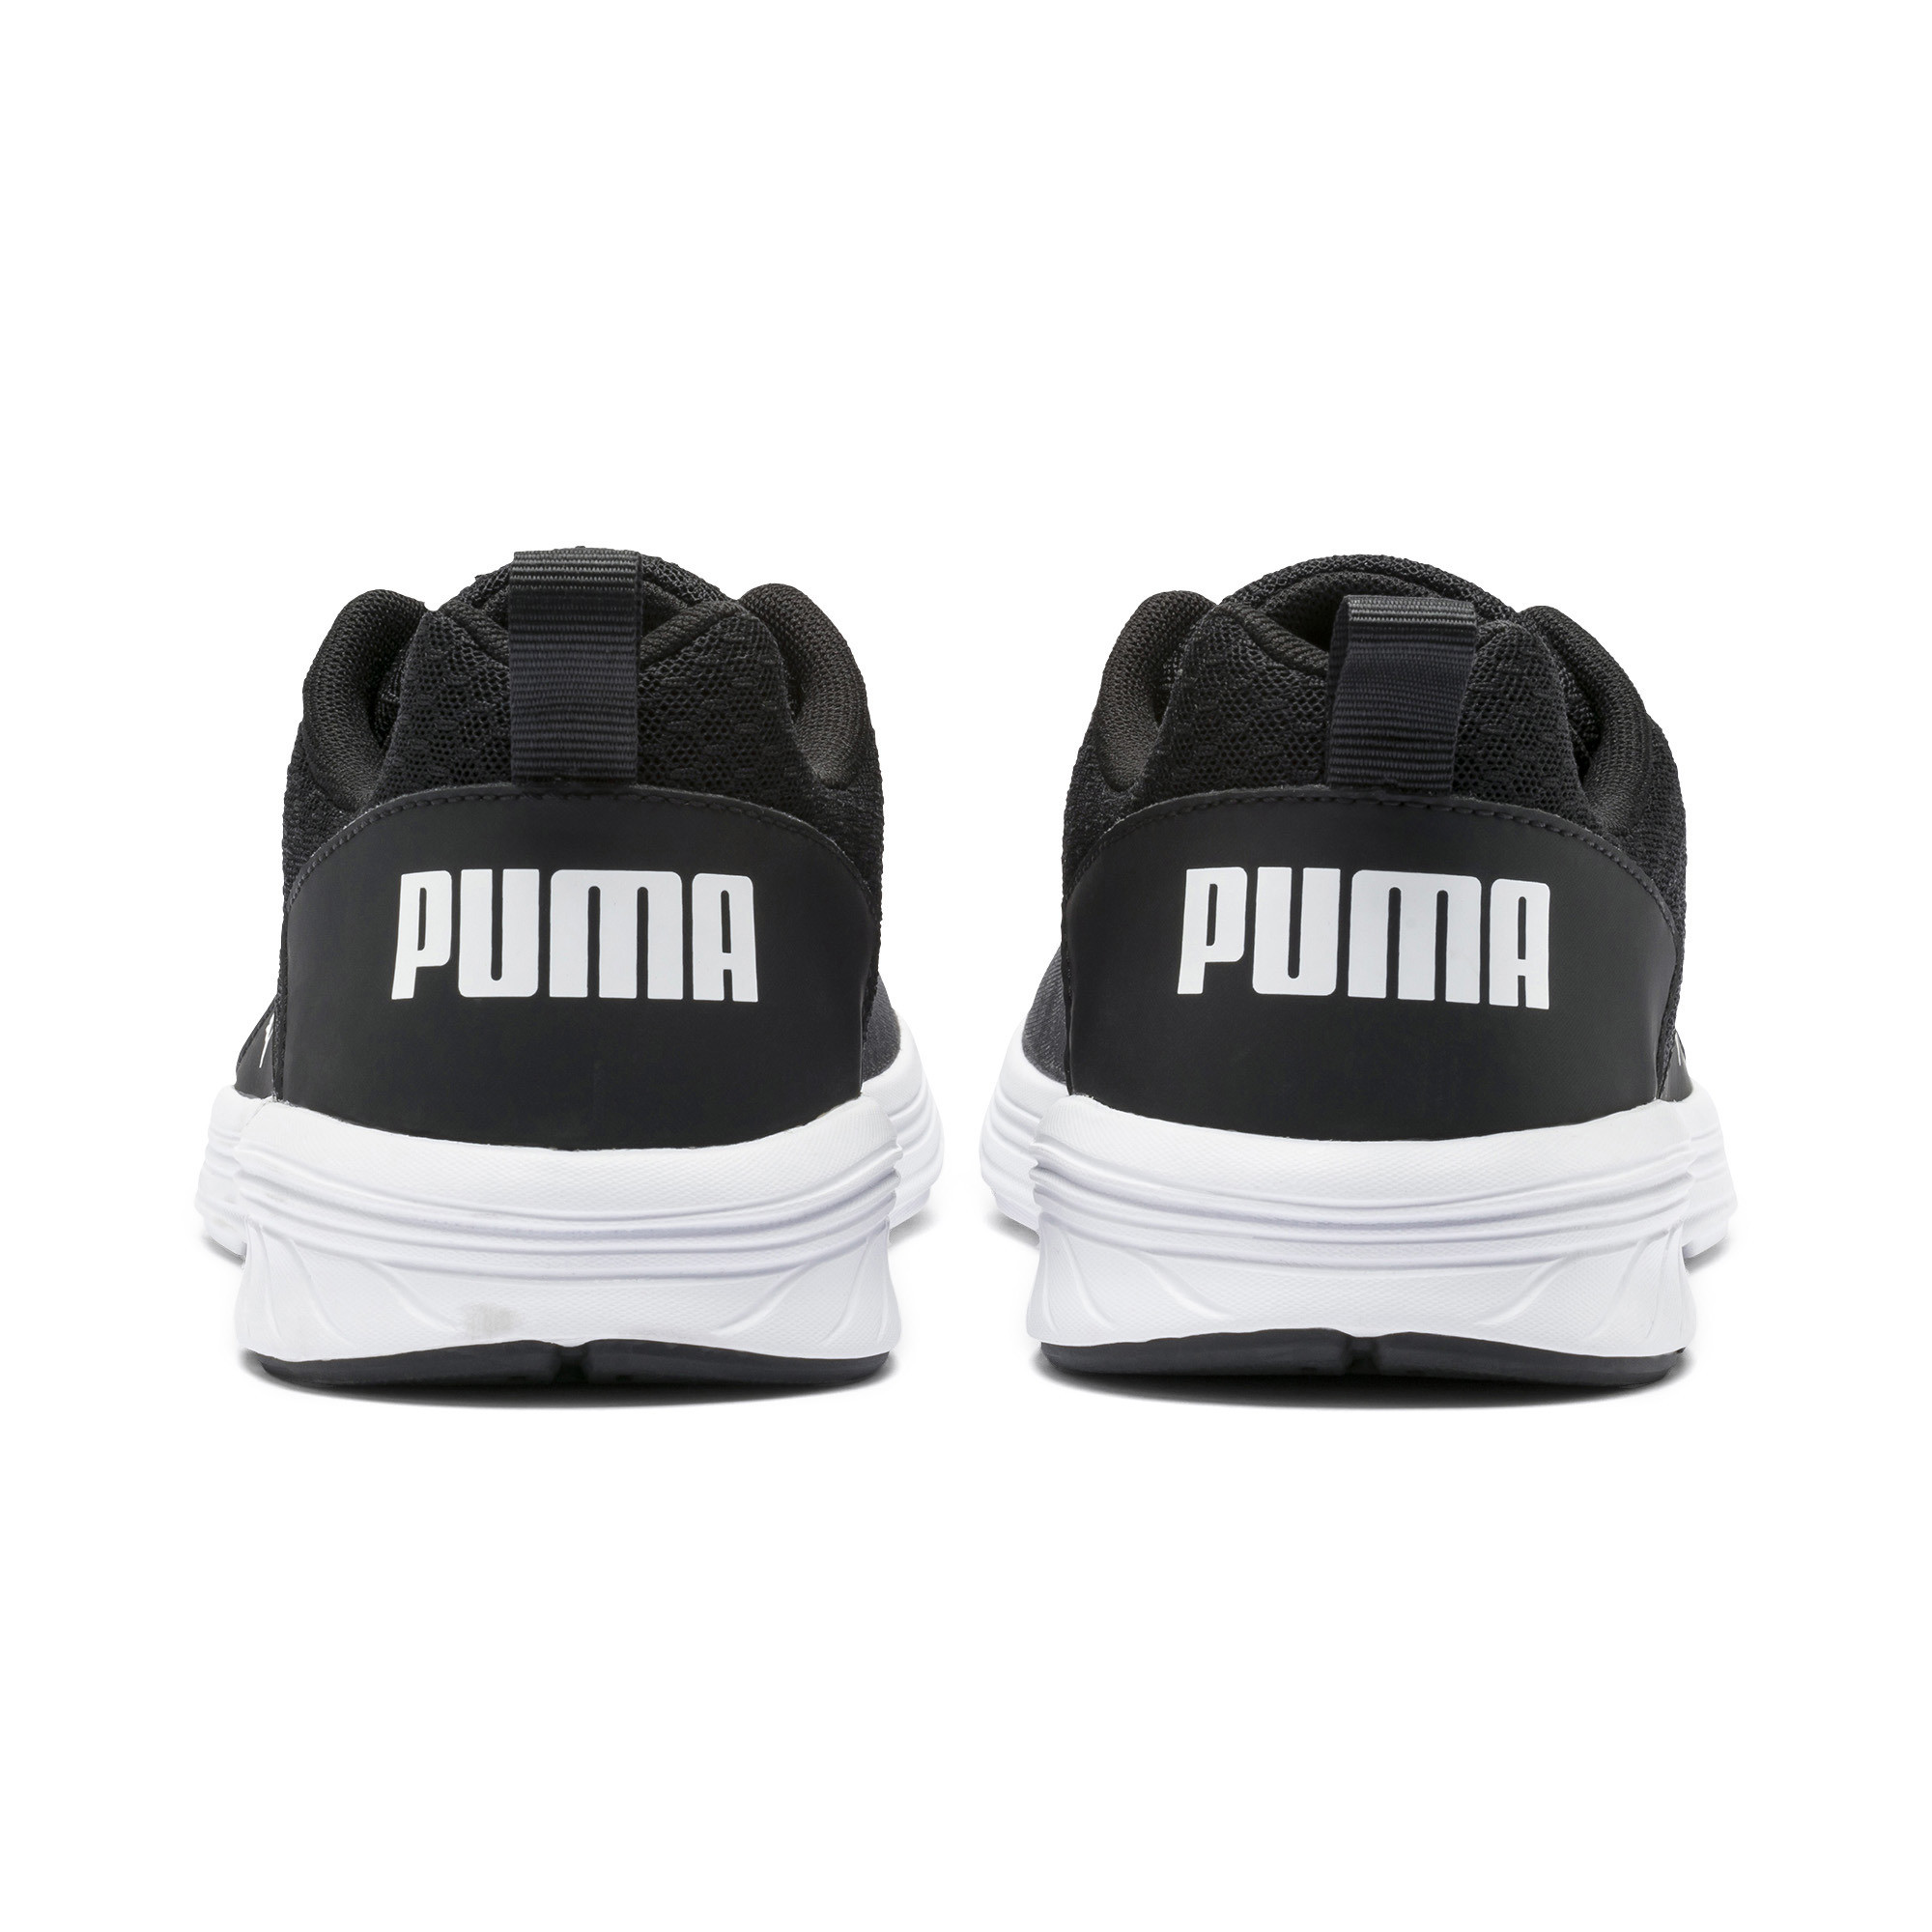 PUMA-Men-039-s-NRGY-Comet-Running-Shoes thumbnail 3